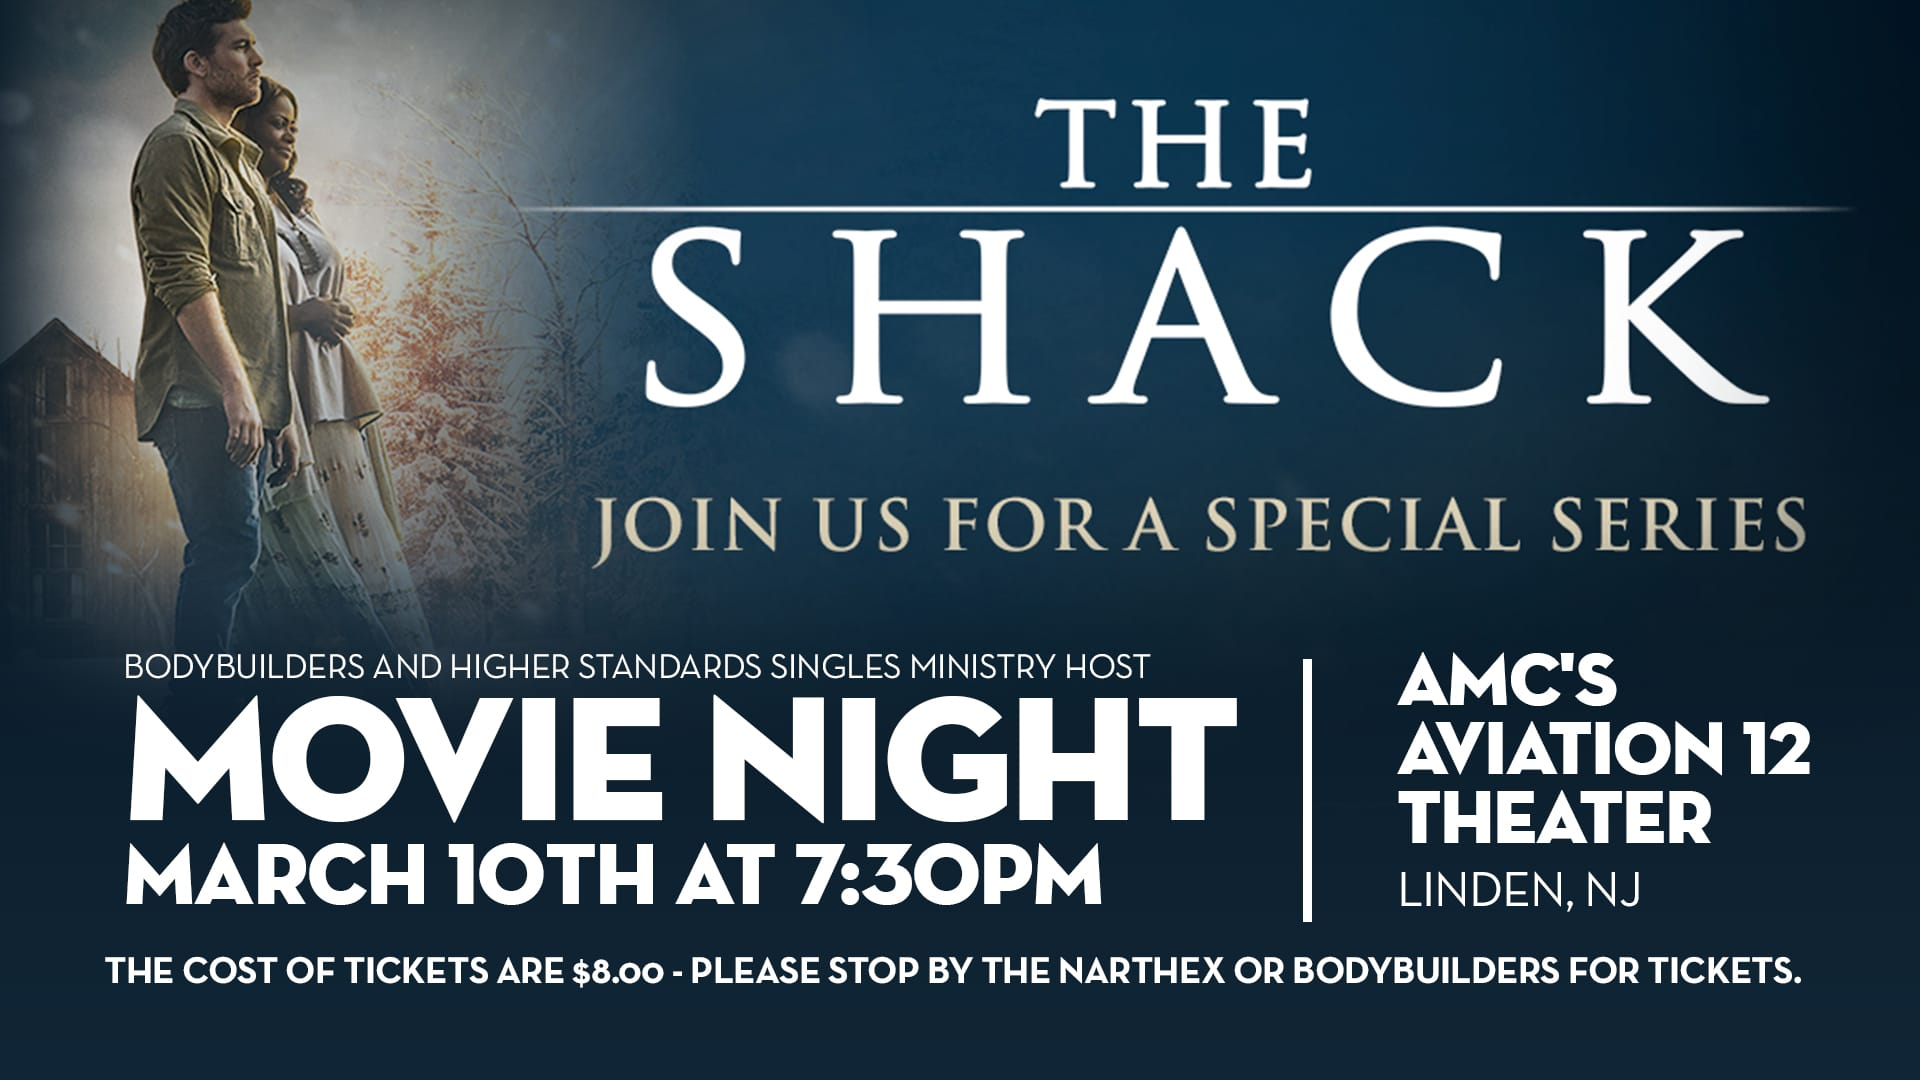 the shack movie night agape family worship center higher standards singles ministry as we host a movie night to see the shack on friday 10th at 7 30pm at amc s aviation 12 theater in linden nj